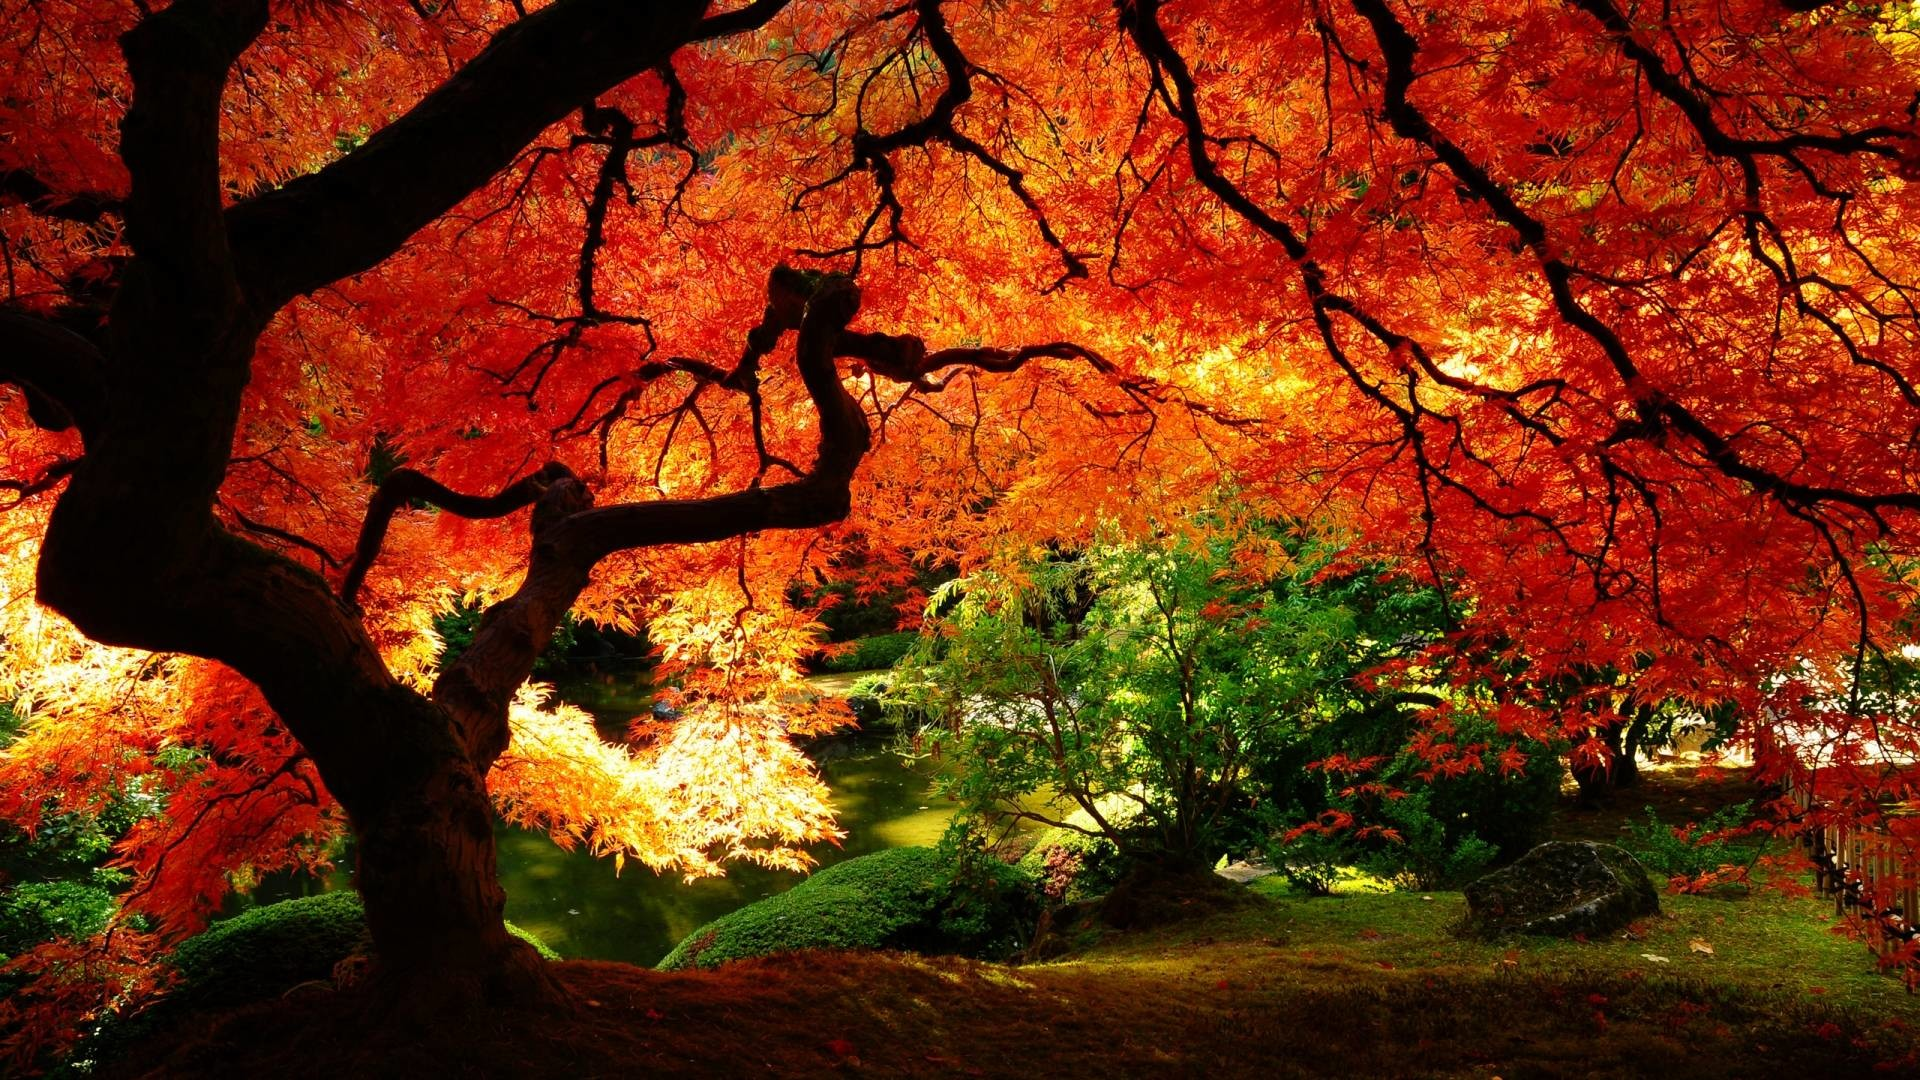 Fall Wallpaper Desktop 72 images 1920x1080